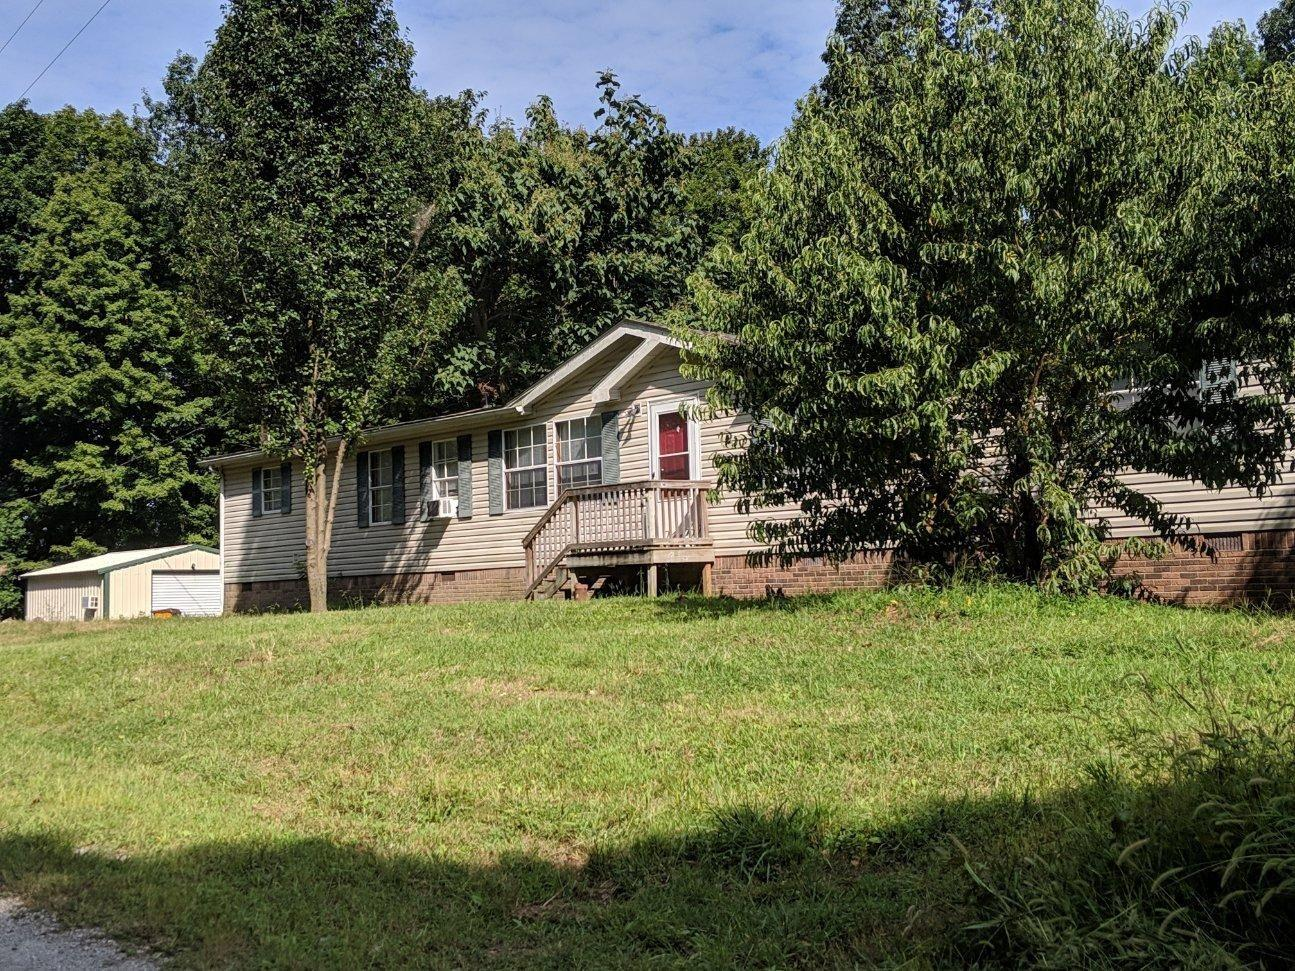 2984 Parrish Hollow Rd, Lynnville, TN 38472 - Lynnville, TN real estate listing